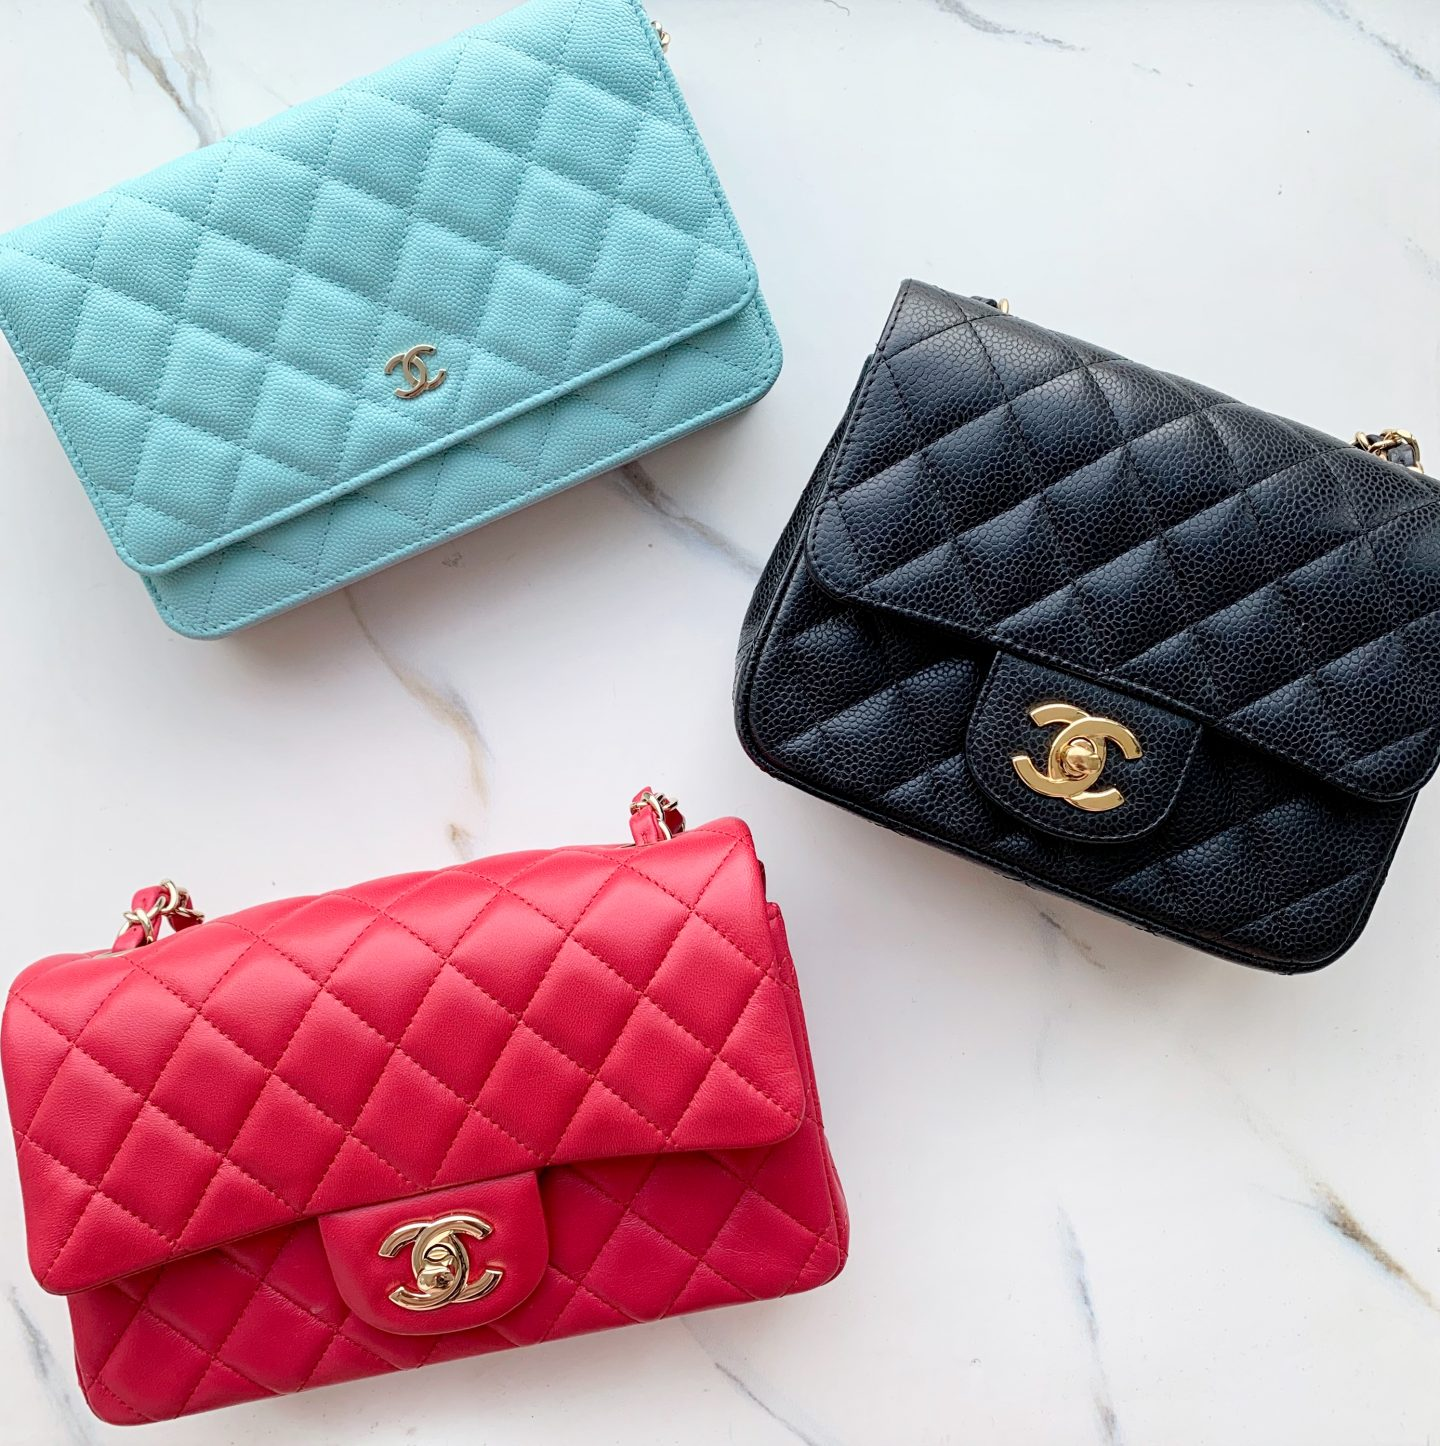 c443f849ca93e0 The Best First Chanel Bag? - Chase Amie